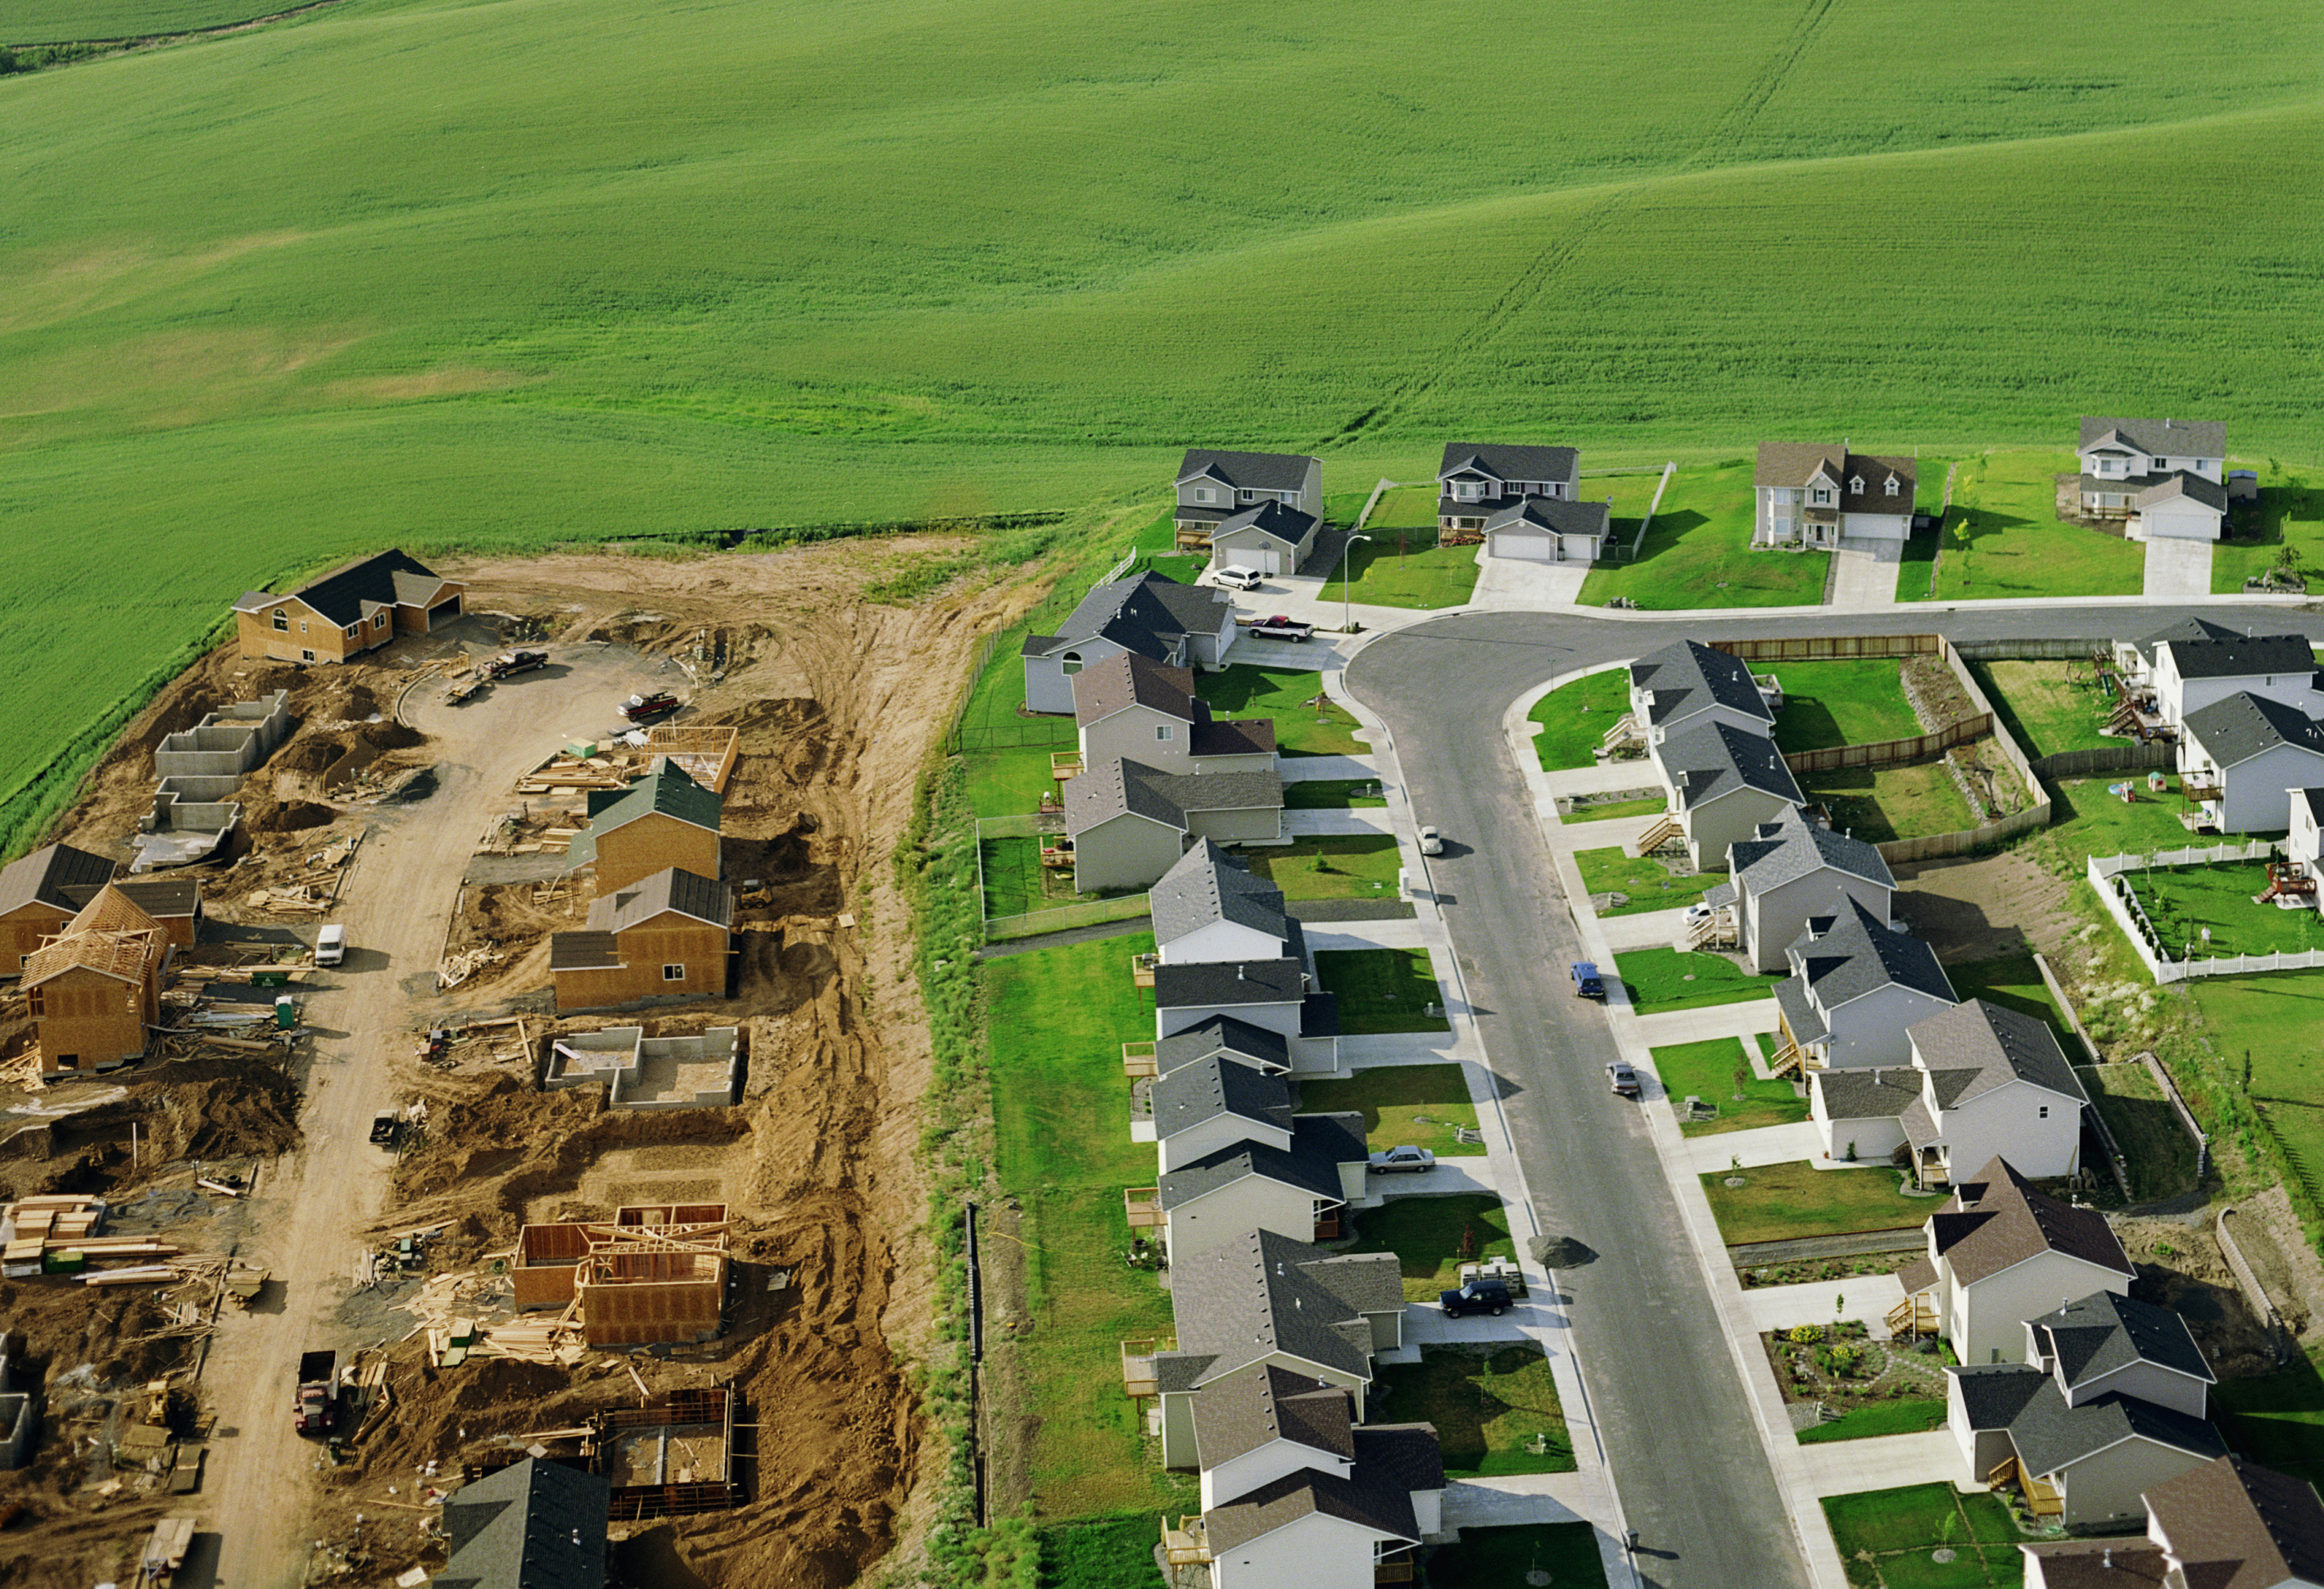 Housing development under construction on farmland, aerial view.